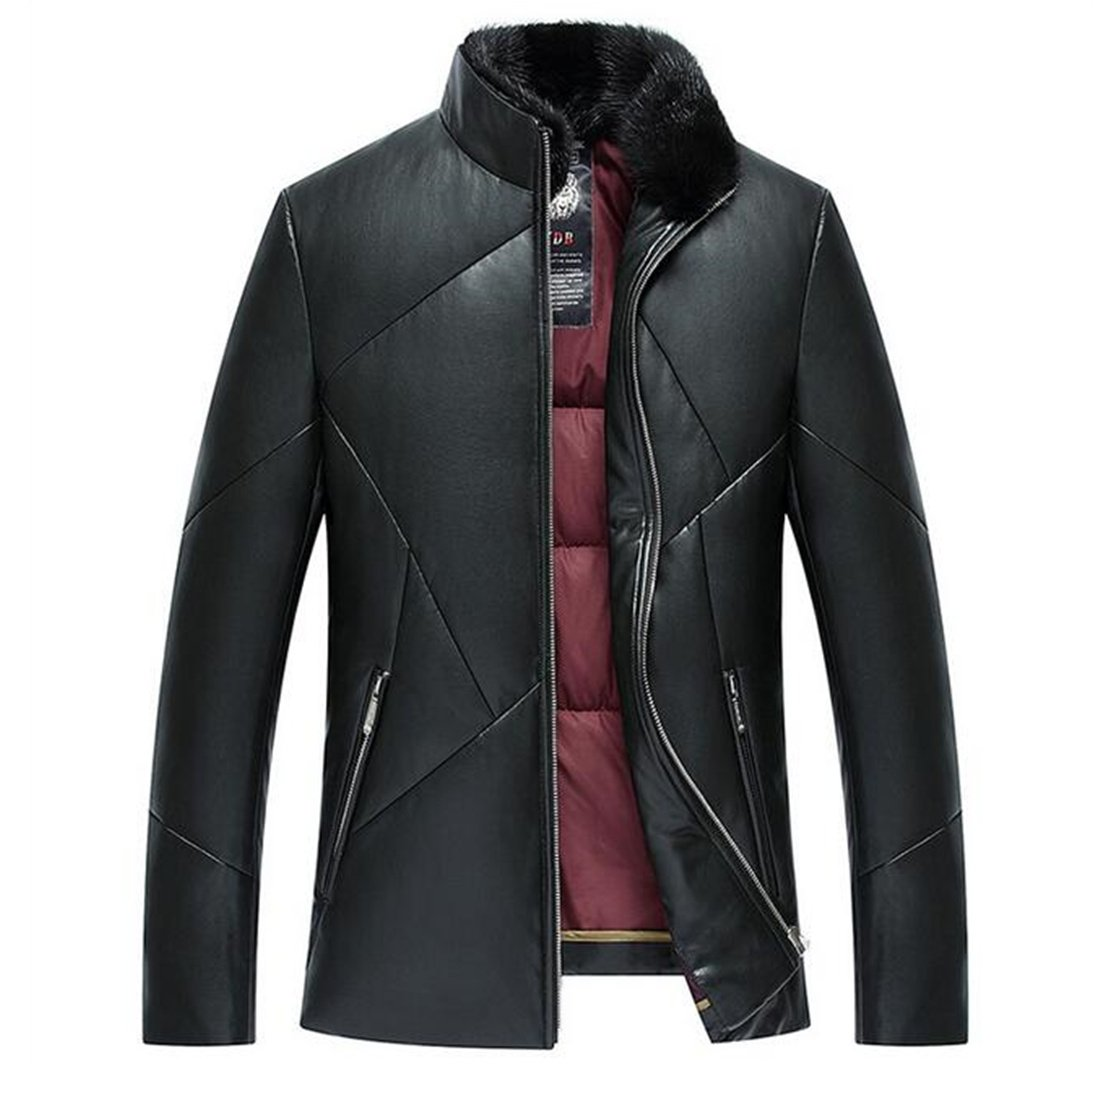 Partiss Men's Stand Up Collar PU Leather Jacket,XL,Black